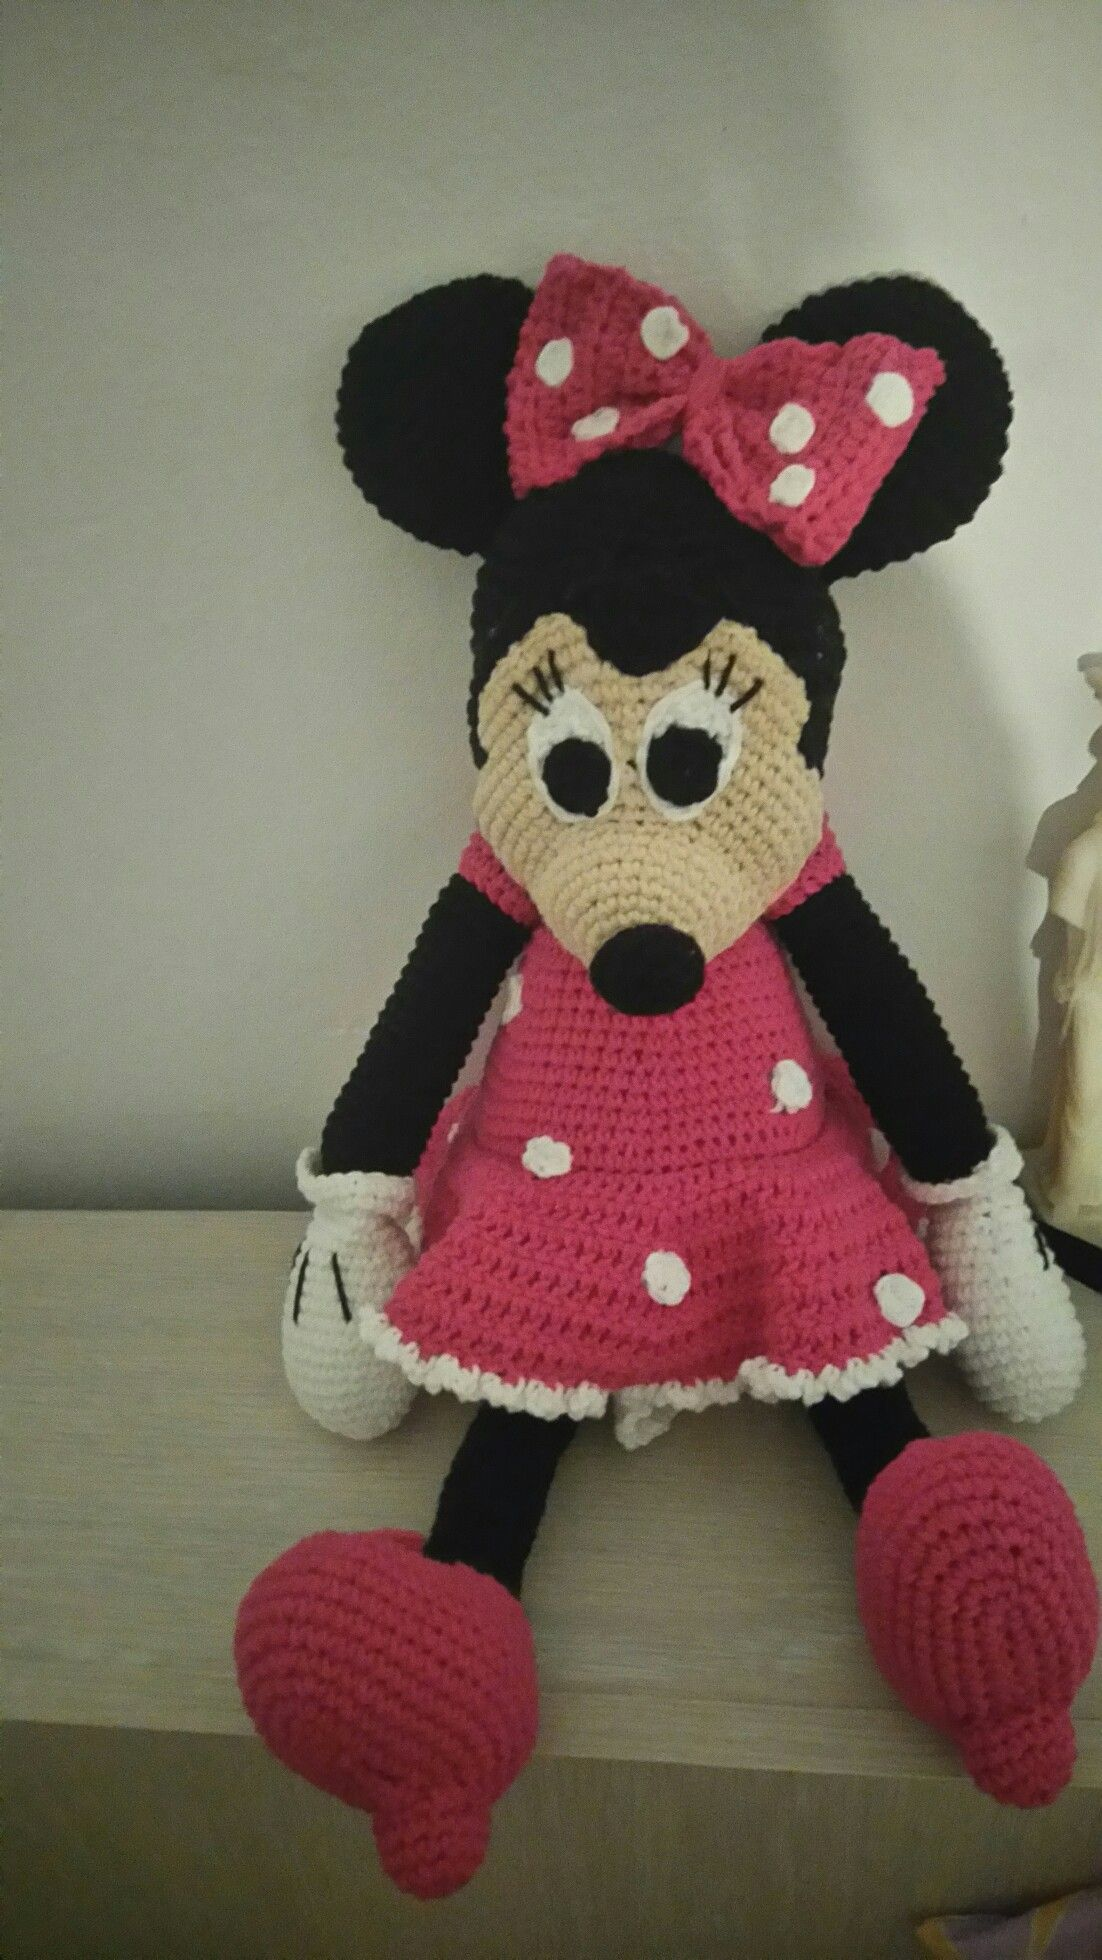 Minnie mouse amigurumi pinterest minnie mouse amigurumi and minnie mouse bankloansurffo Choice Image